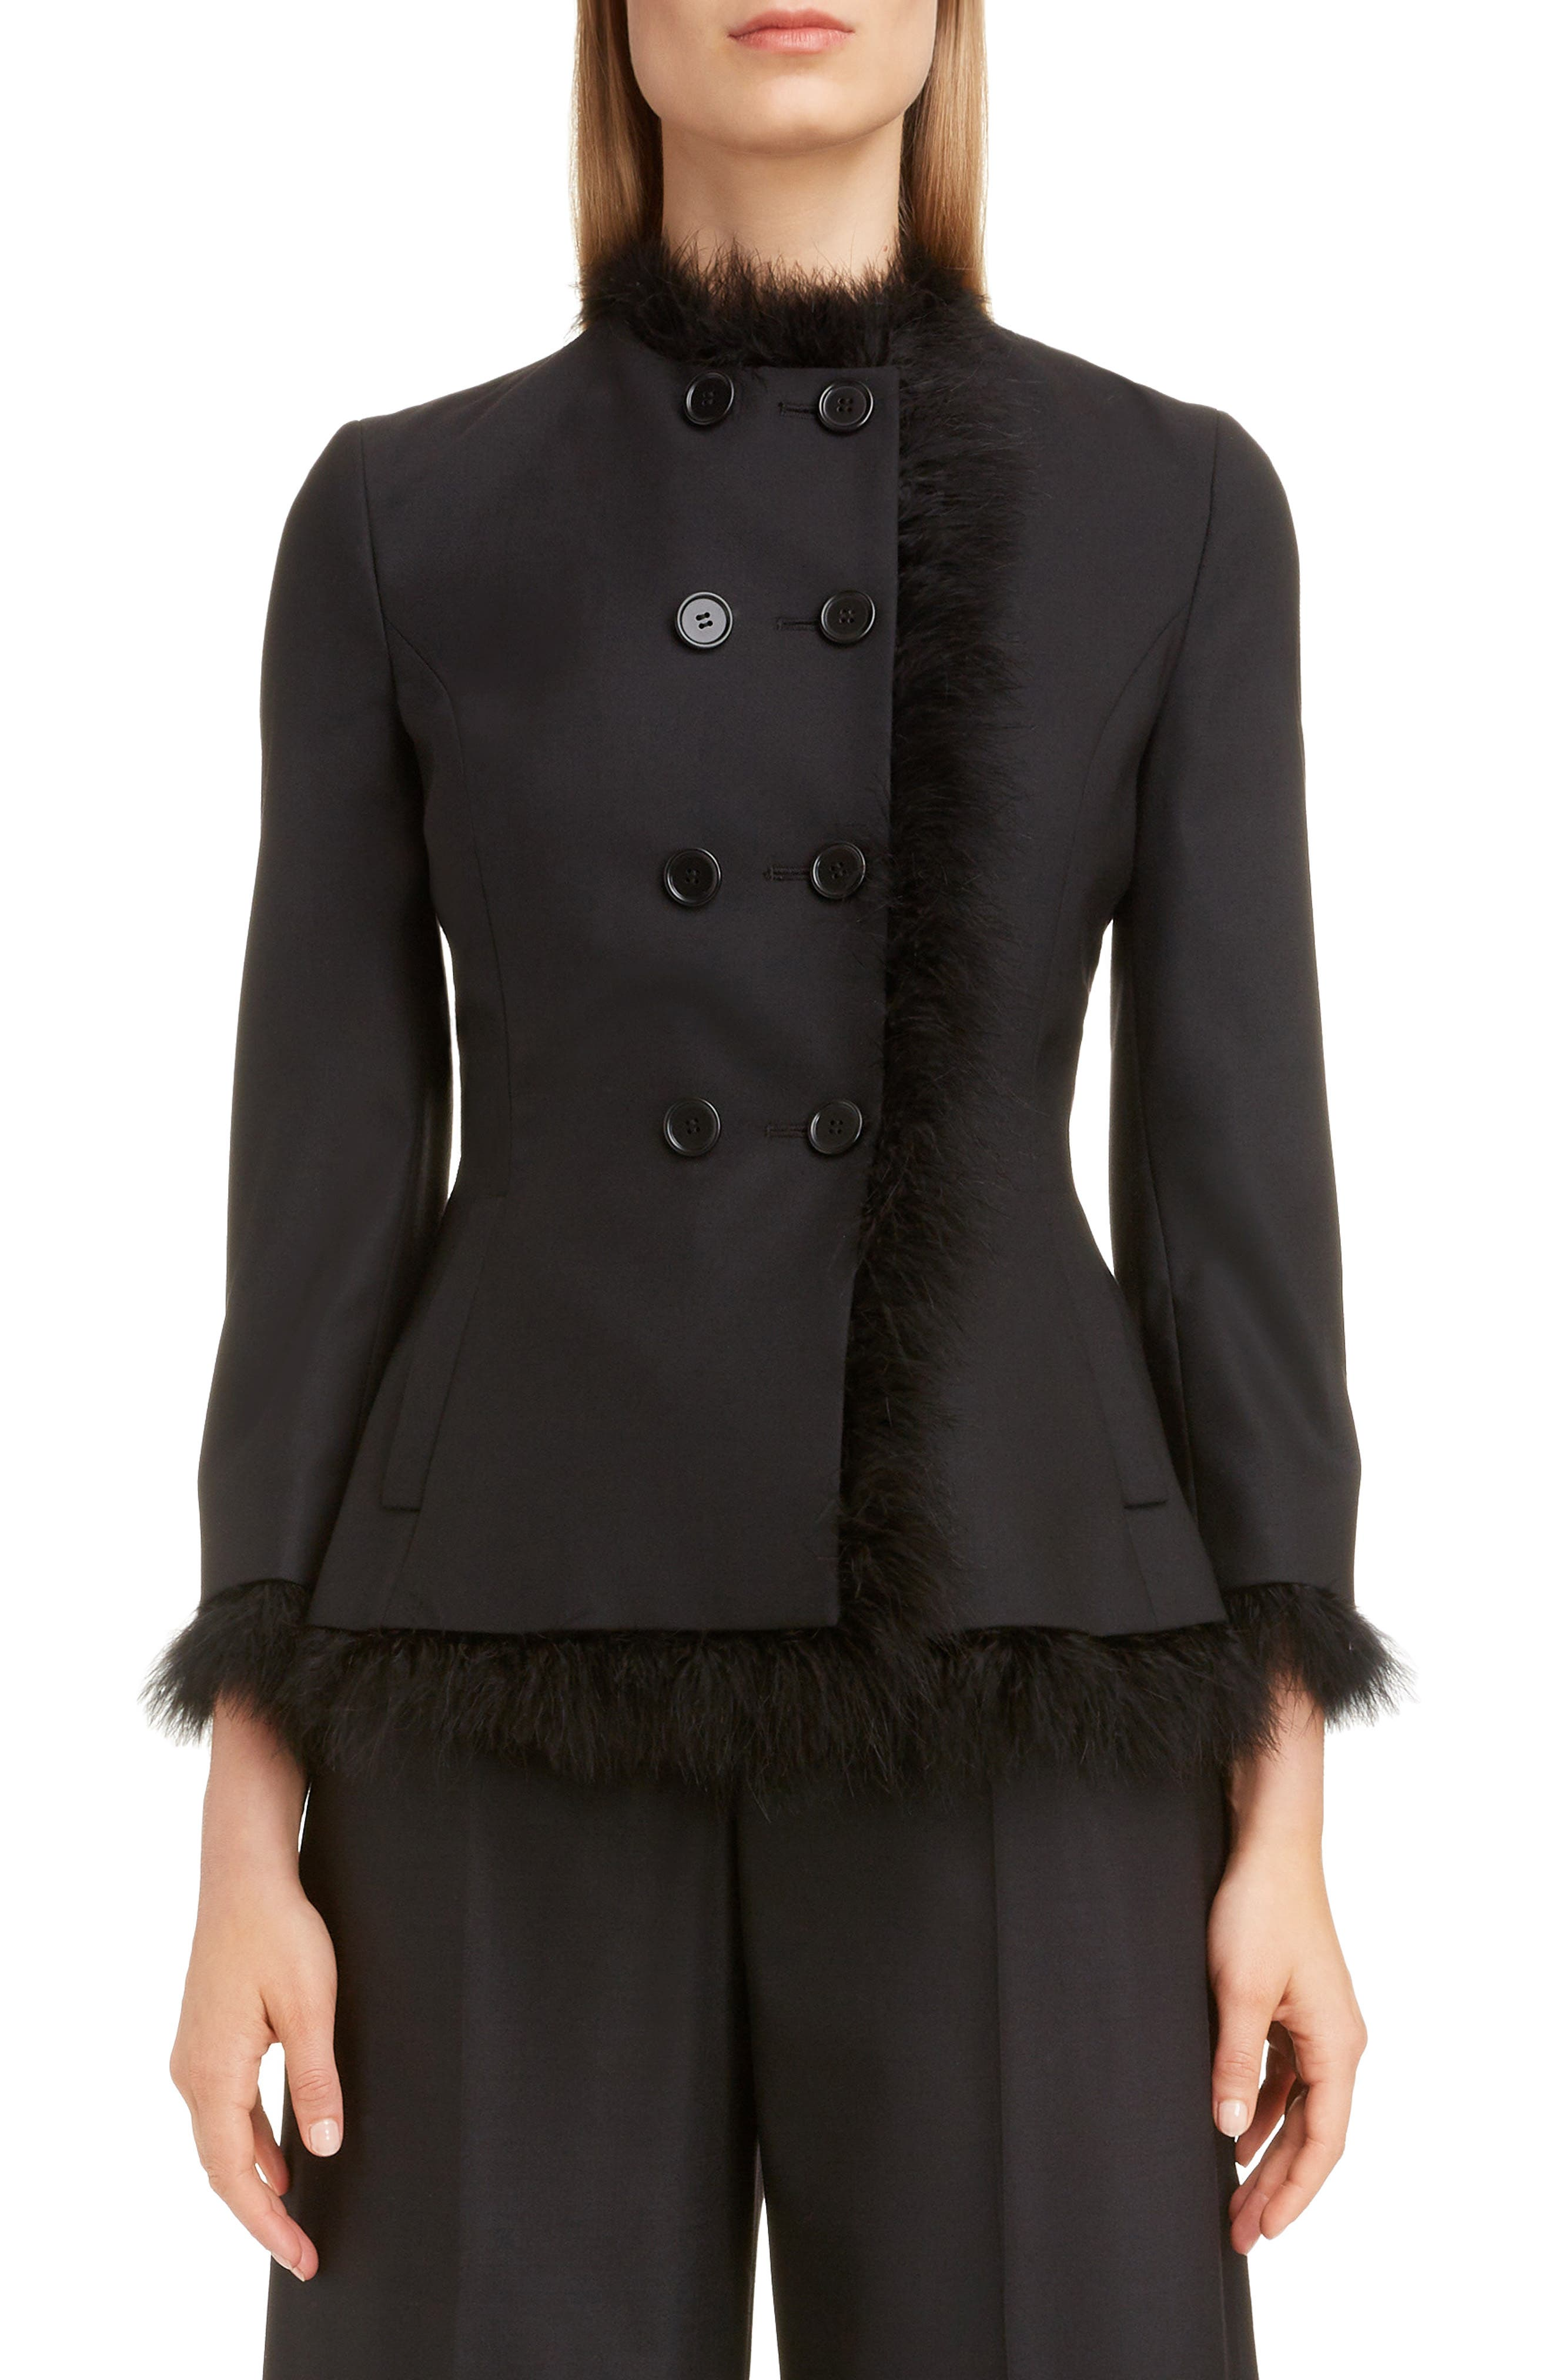 SIMONE ROCHA Marabou Trim Double Breasted Stretch Wool Jacket, Main, color, BLACK